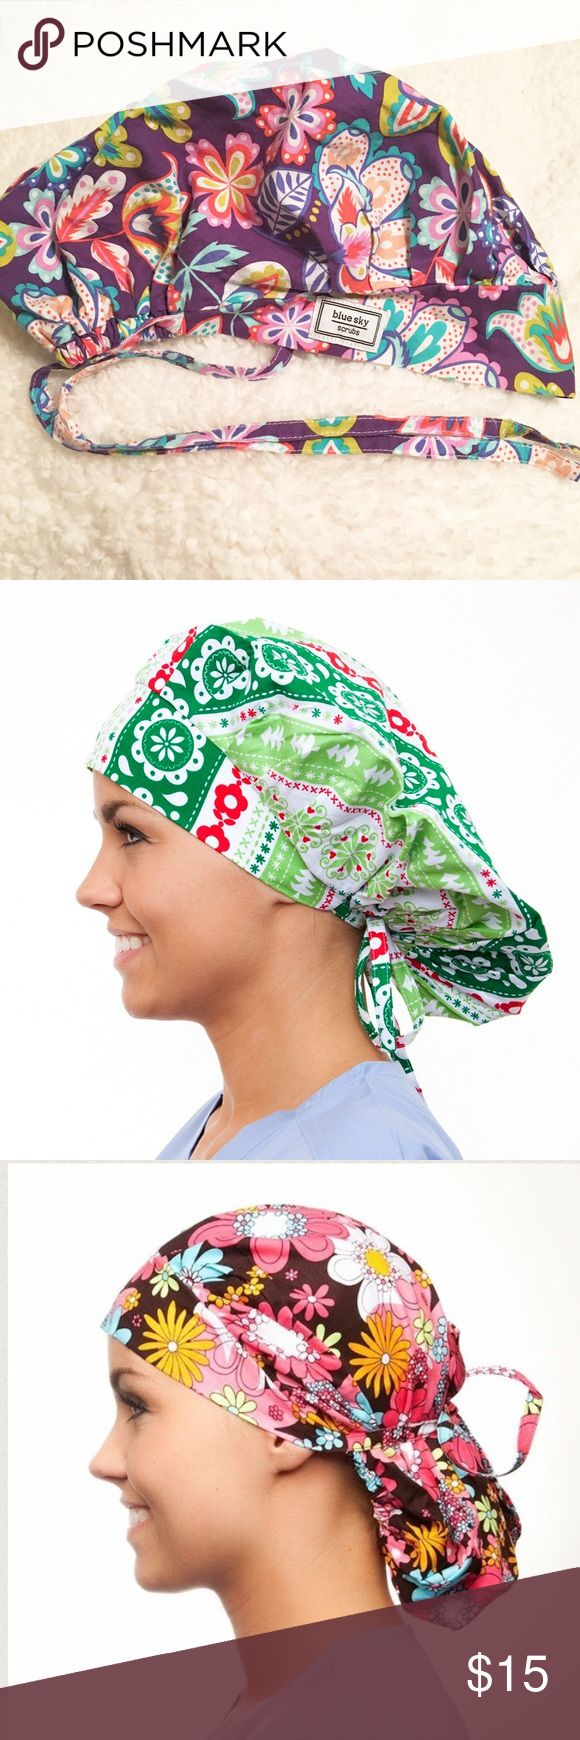 Blue Sky Scrubs Poppy Surgical Hat😷 Blue Sky Scrubs Poppy Surgical Hat😷 Pretty Paisley print of Greens, Oranges, Blues, and White on a Royal Purple background. Can be worn as a bouffant or pulled back with attached ties. *Model pictures are for hat style reference only* Blue Sky Scrubs Other